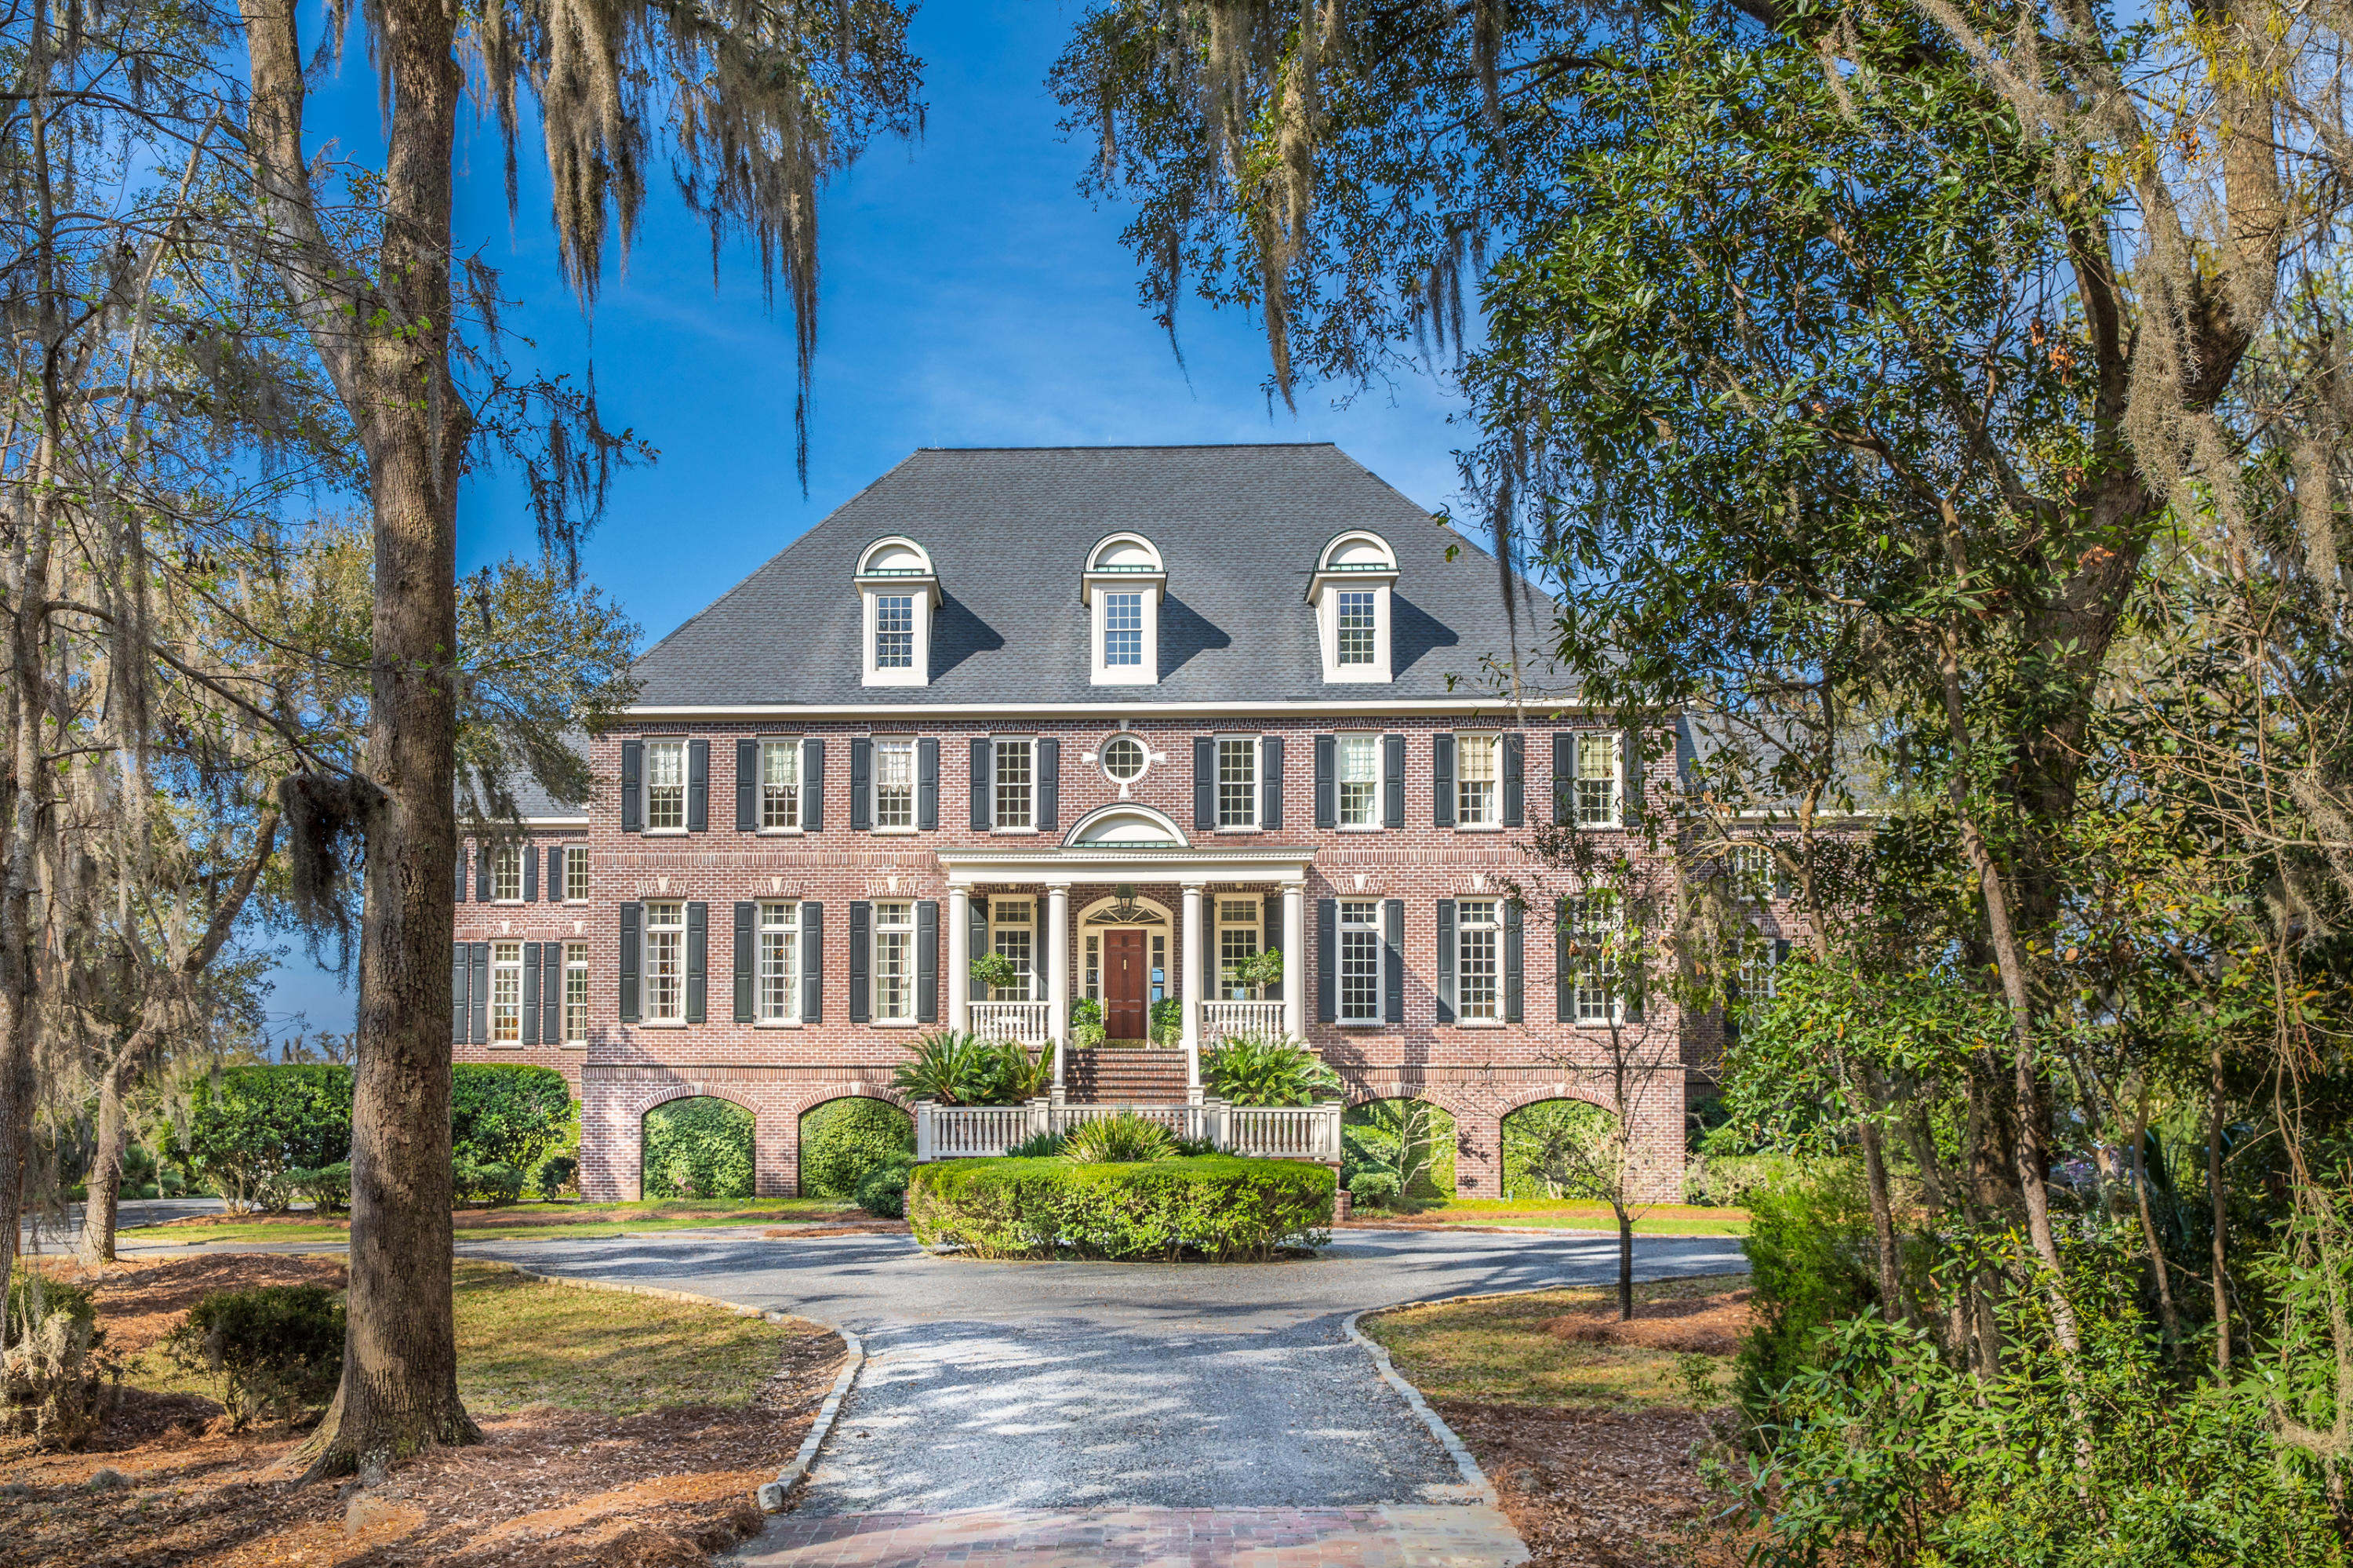 Ravens Bluff Homes For Sale - 5150 Chisolm, Johns Island, SC - 25